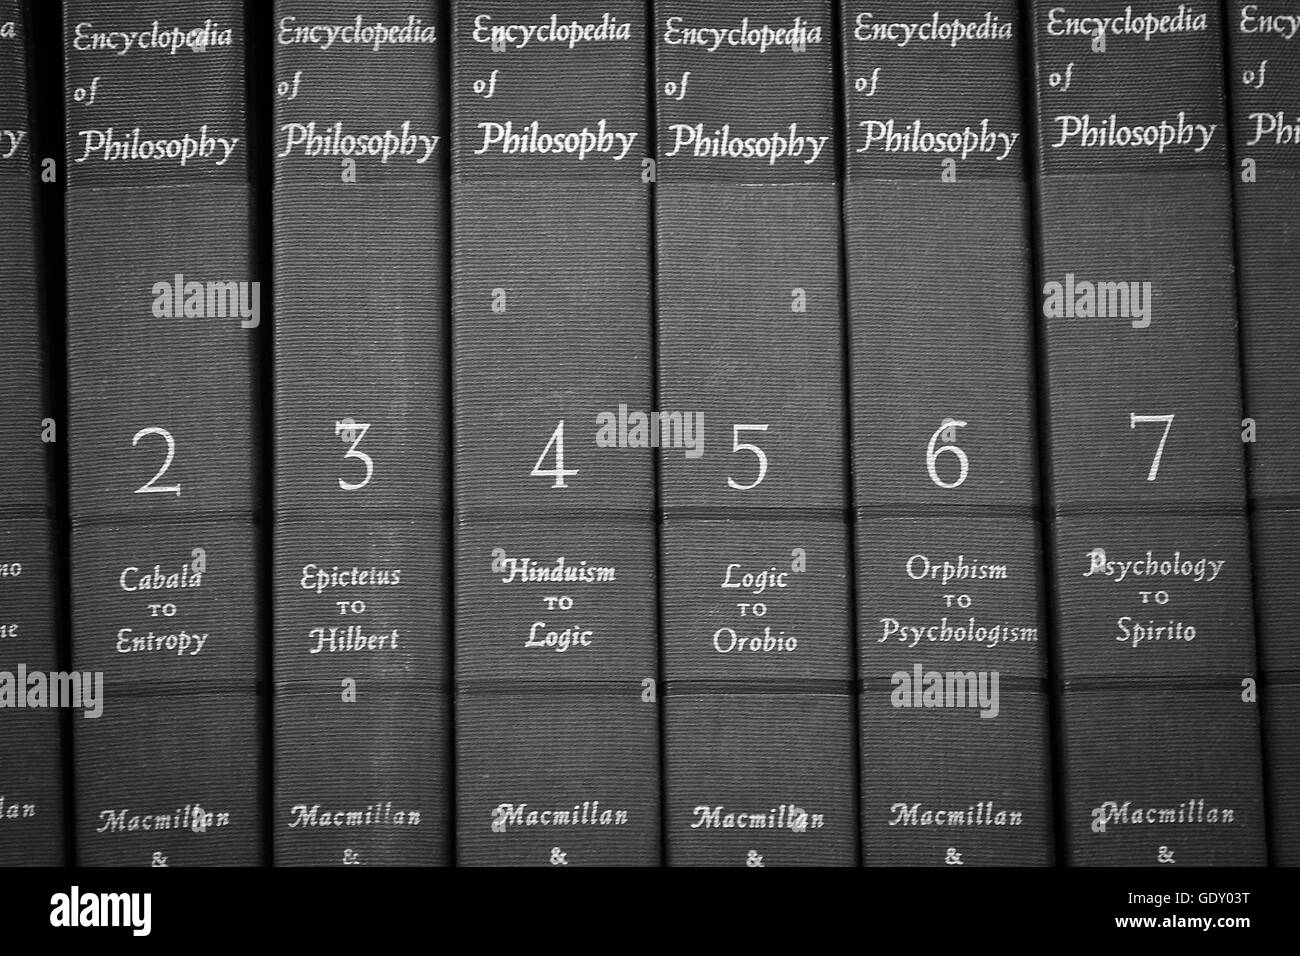 Set Of Books Encyclopaedia Philosophy Editorial Black And White